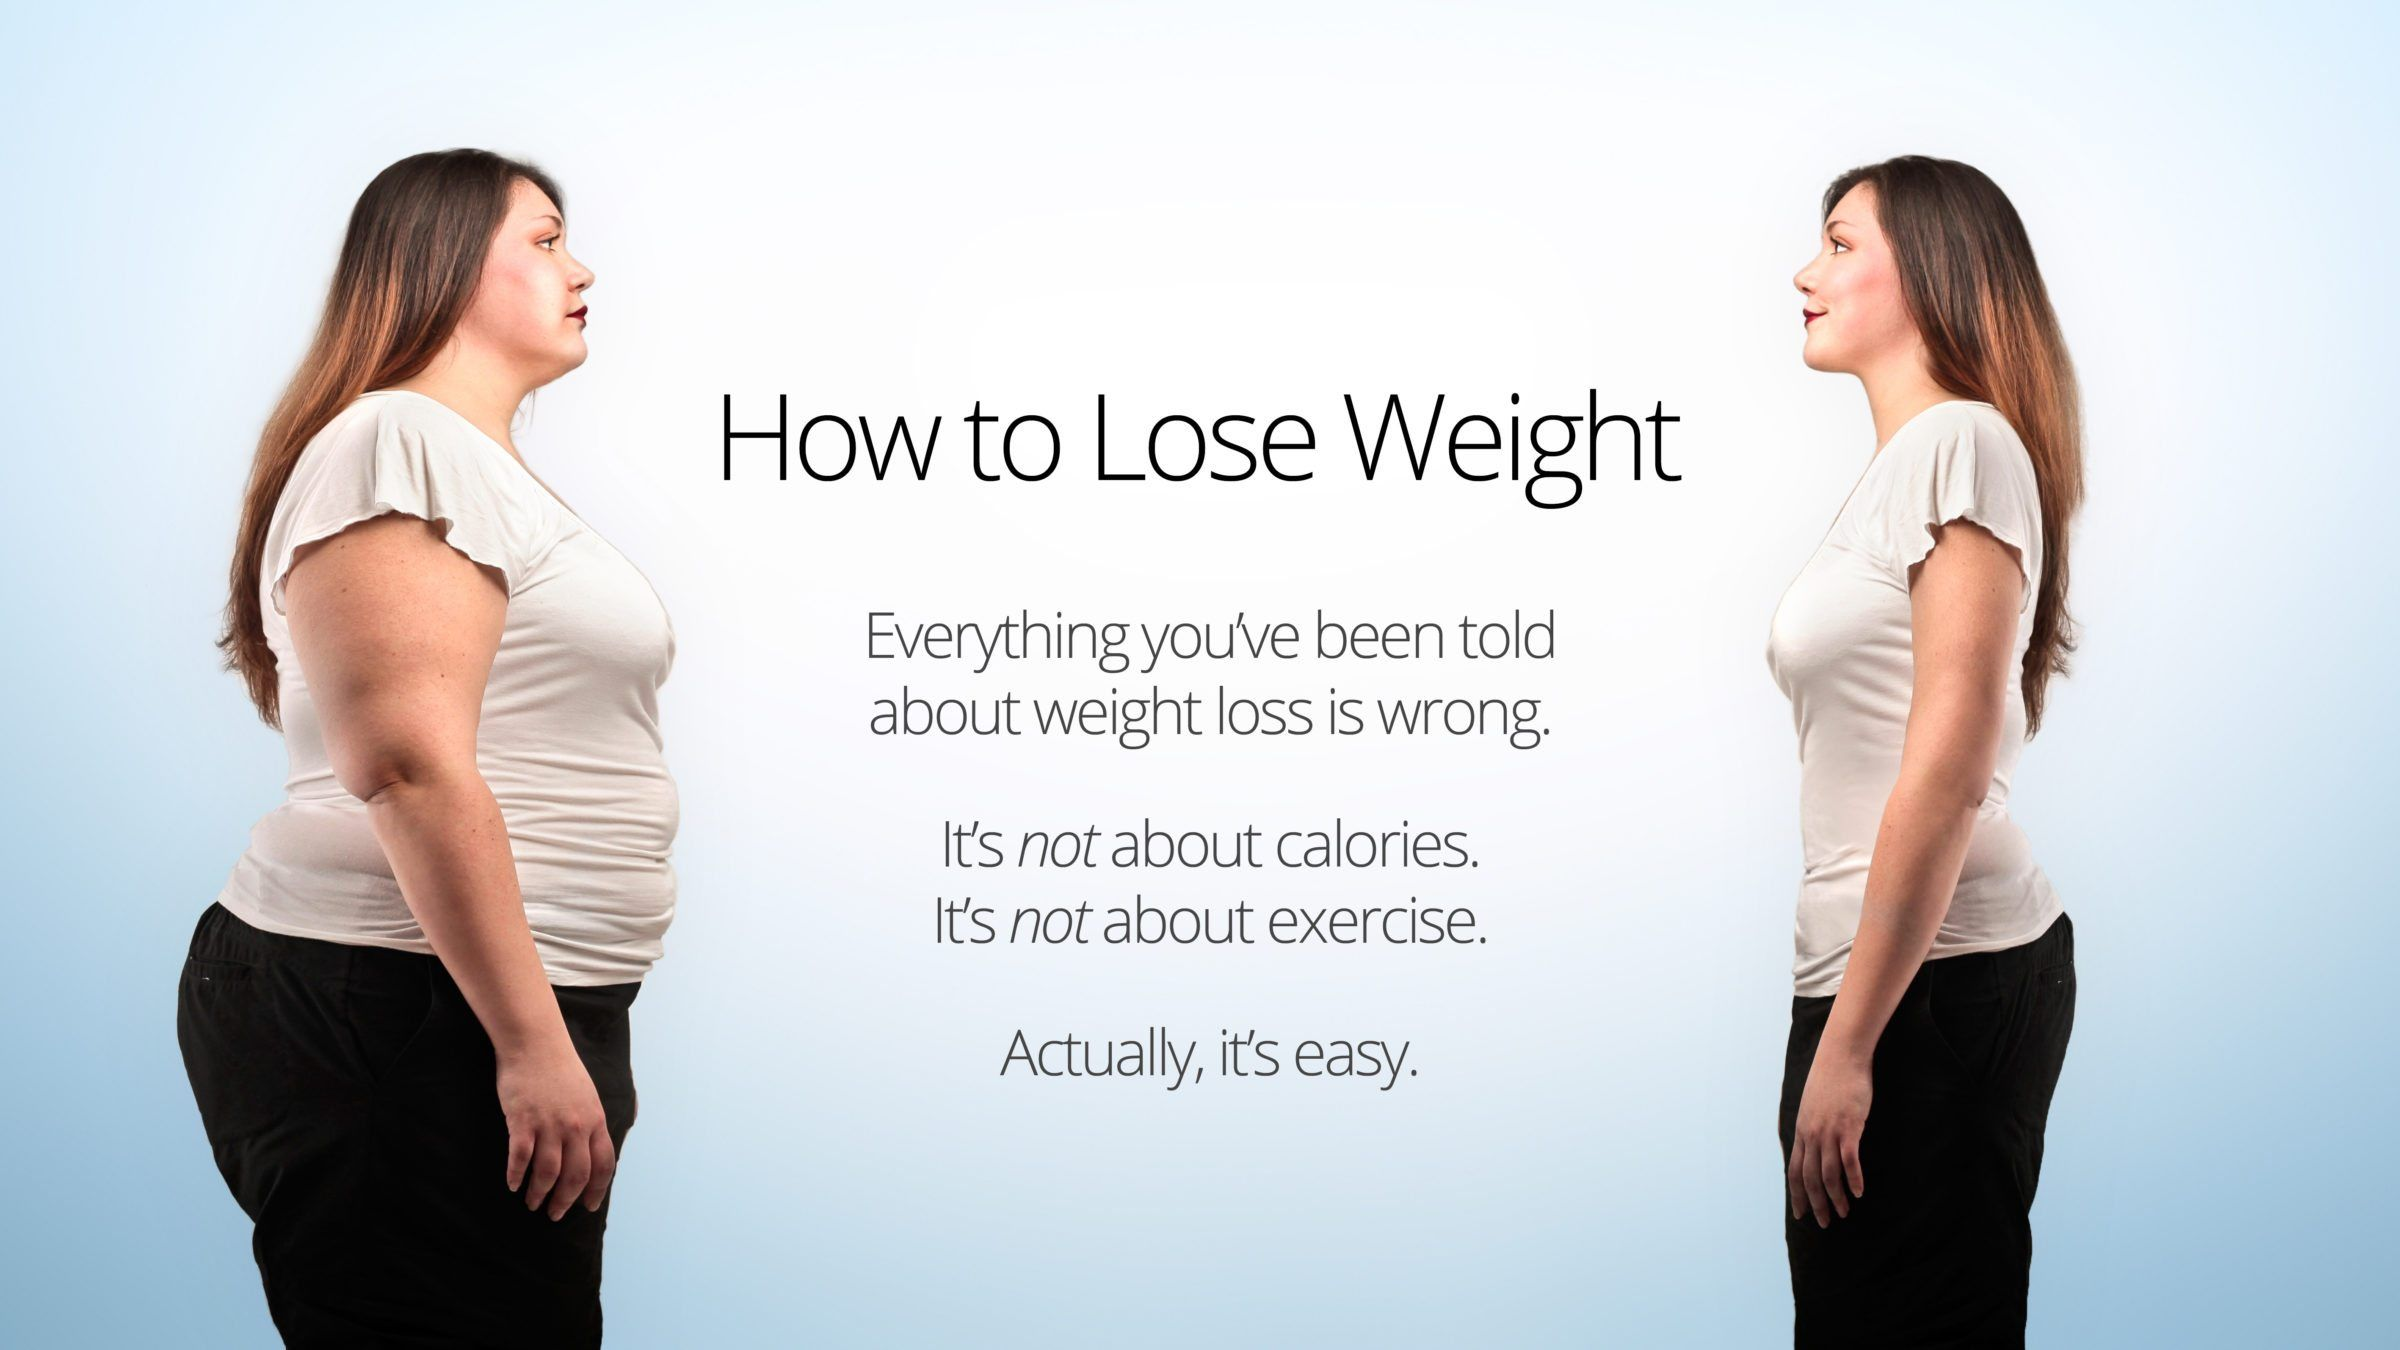 So you want to lose weight for good